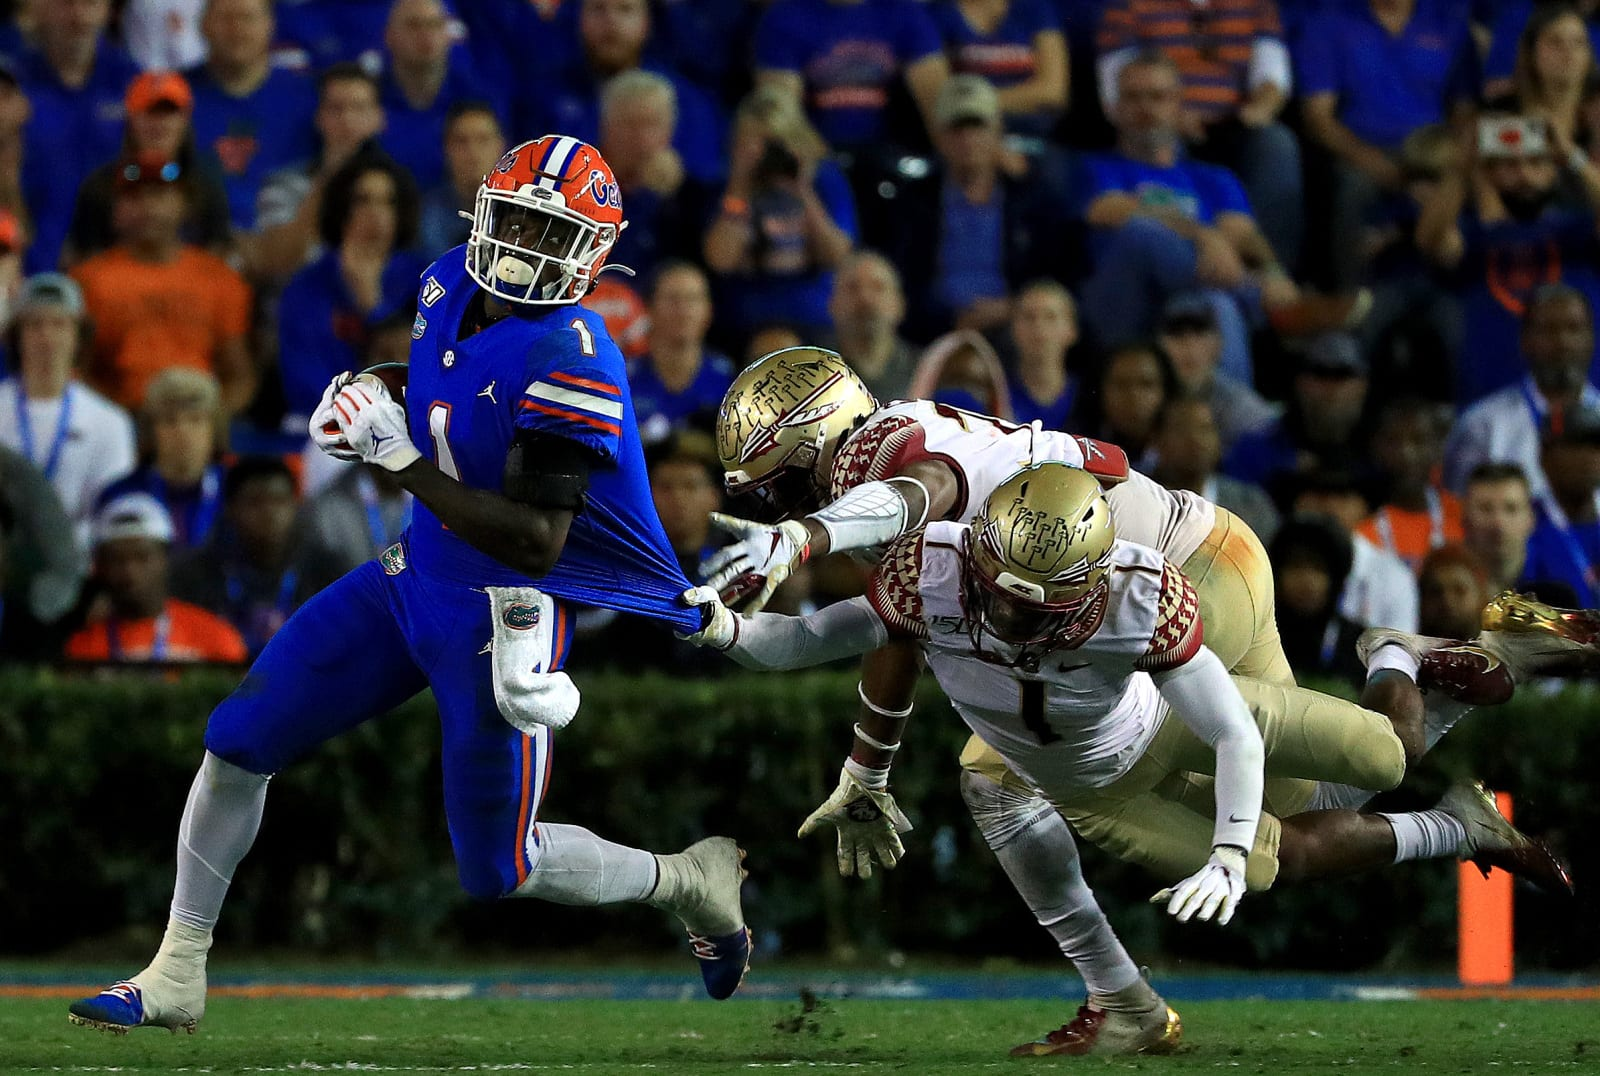 Florida football: Top five performers against Florida State - Page 2